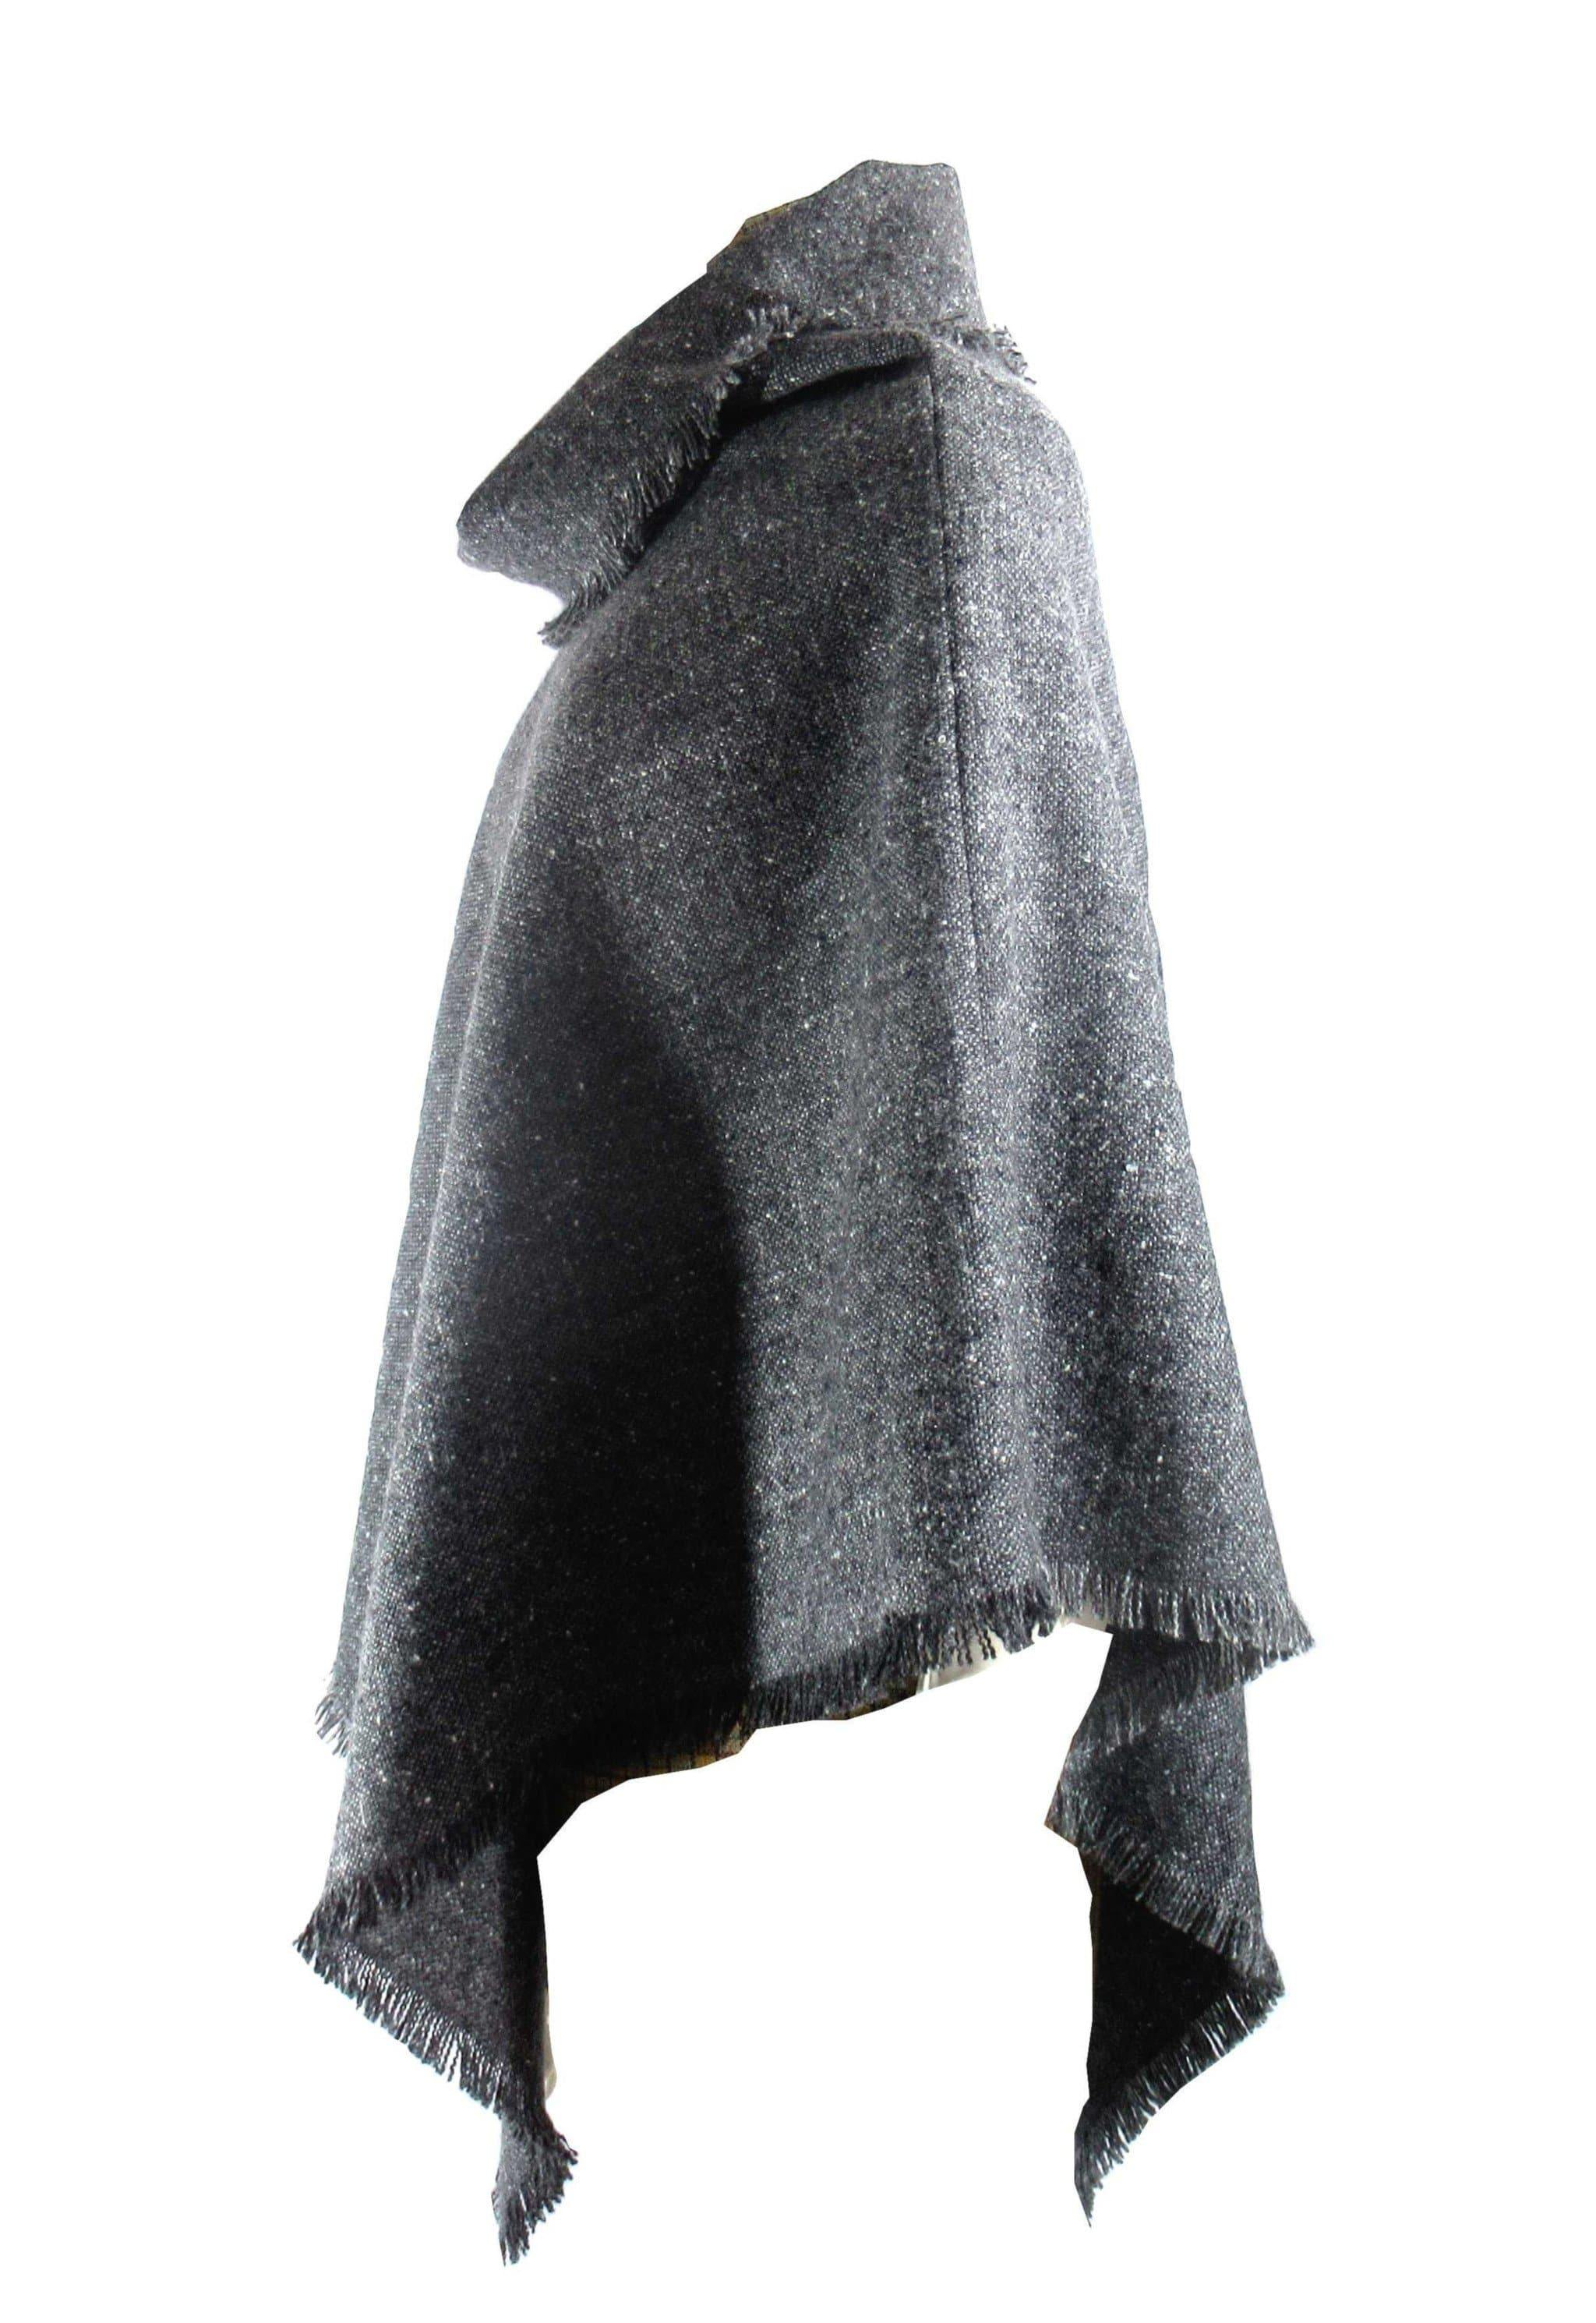 Charcoal Donegal Tweed Poncho Poncho Tweed.ie